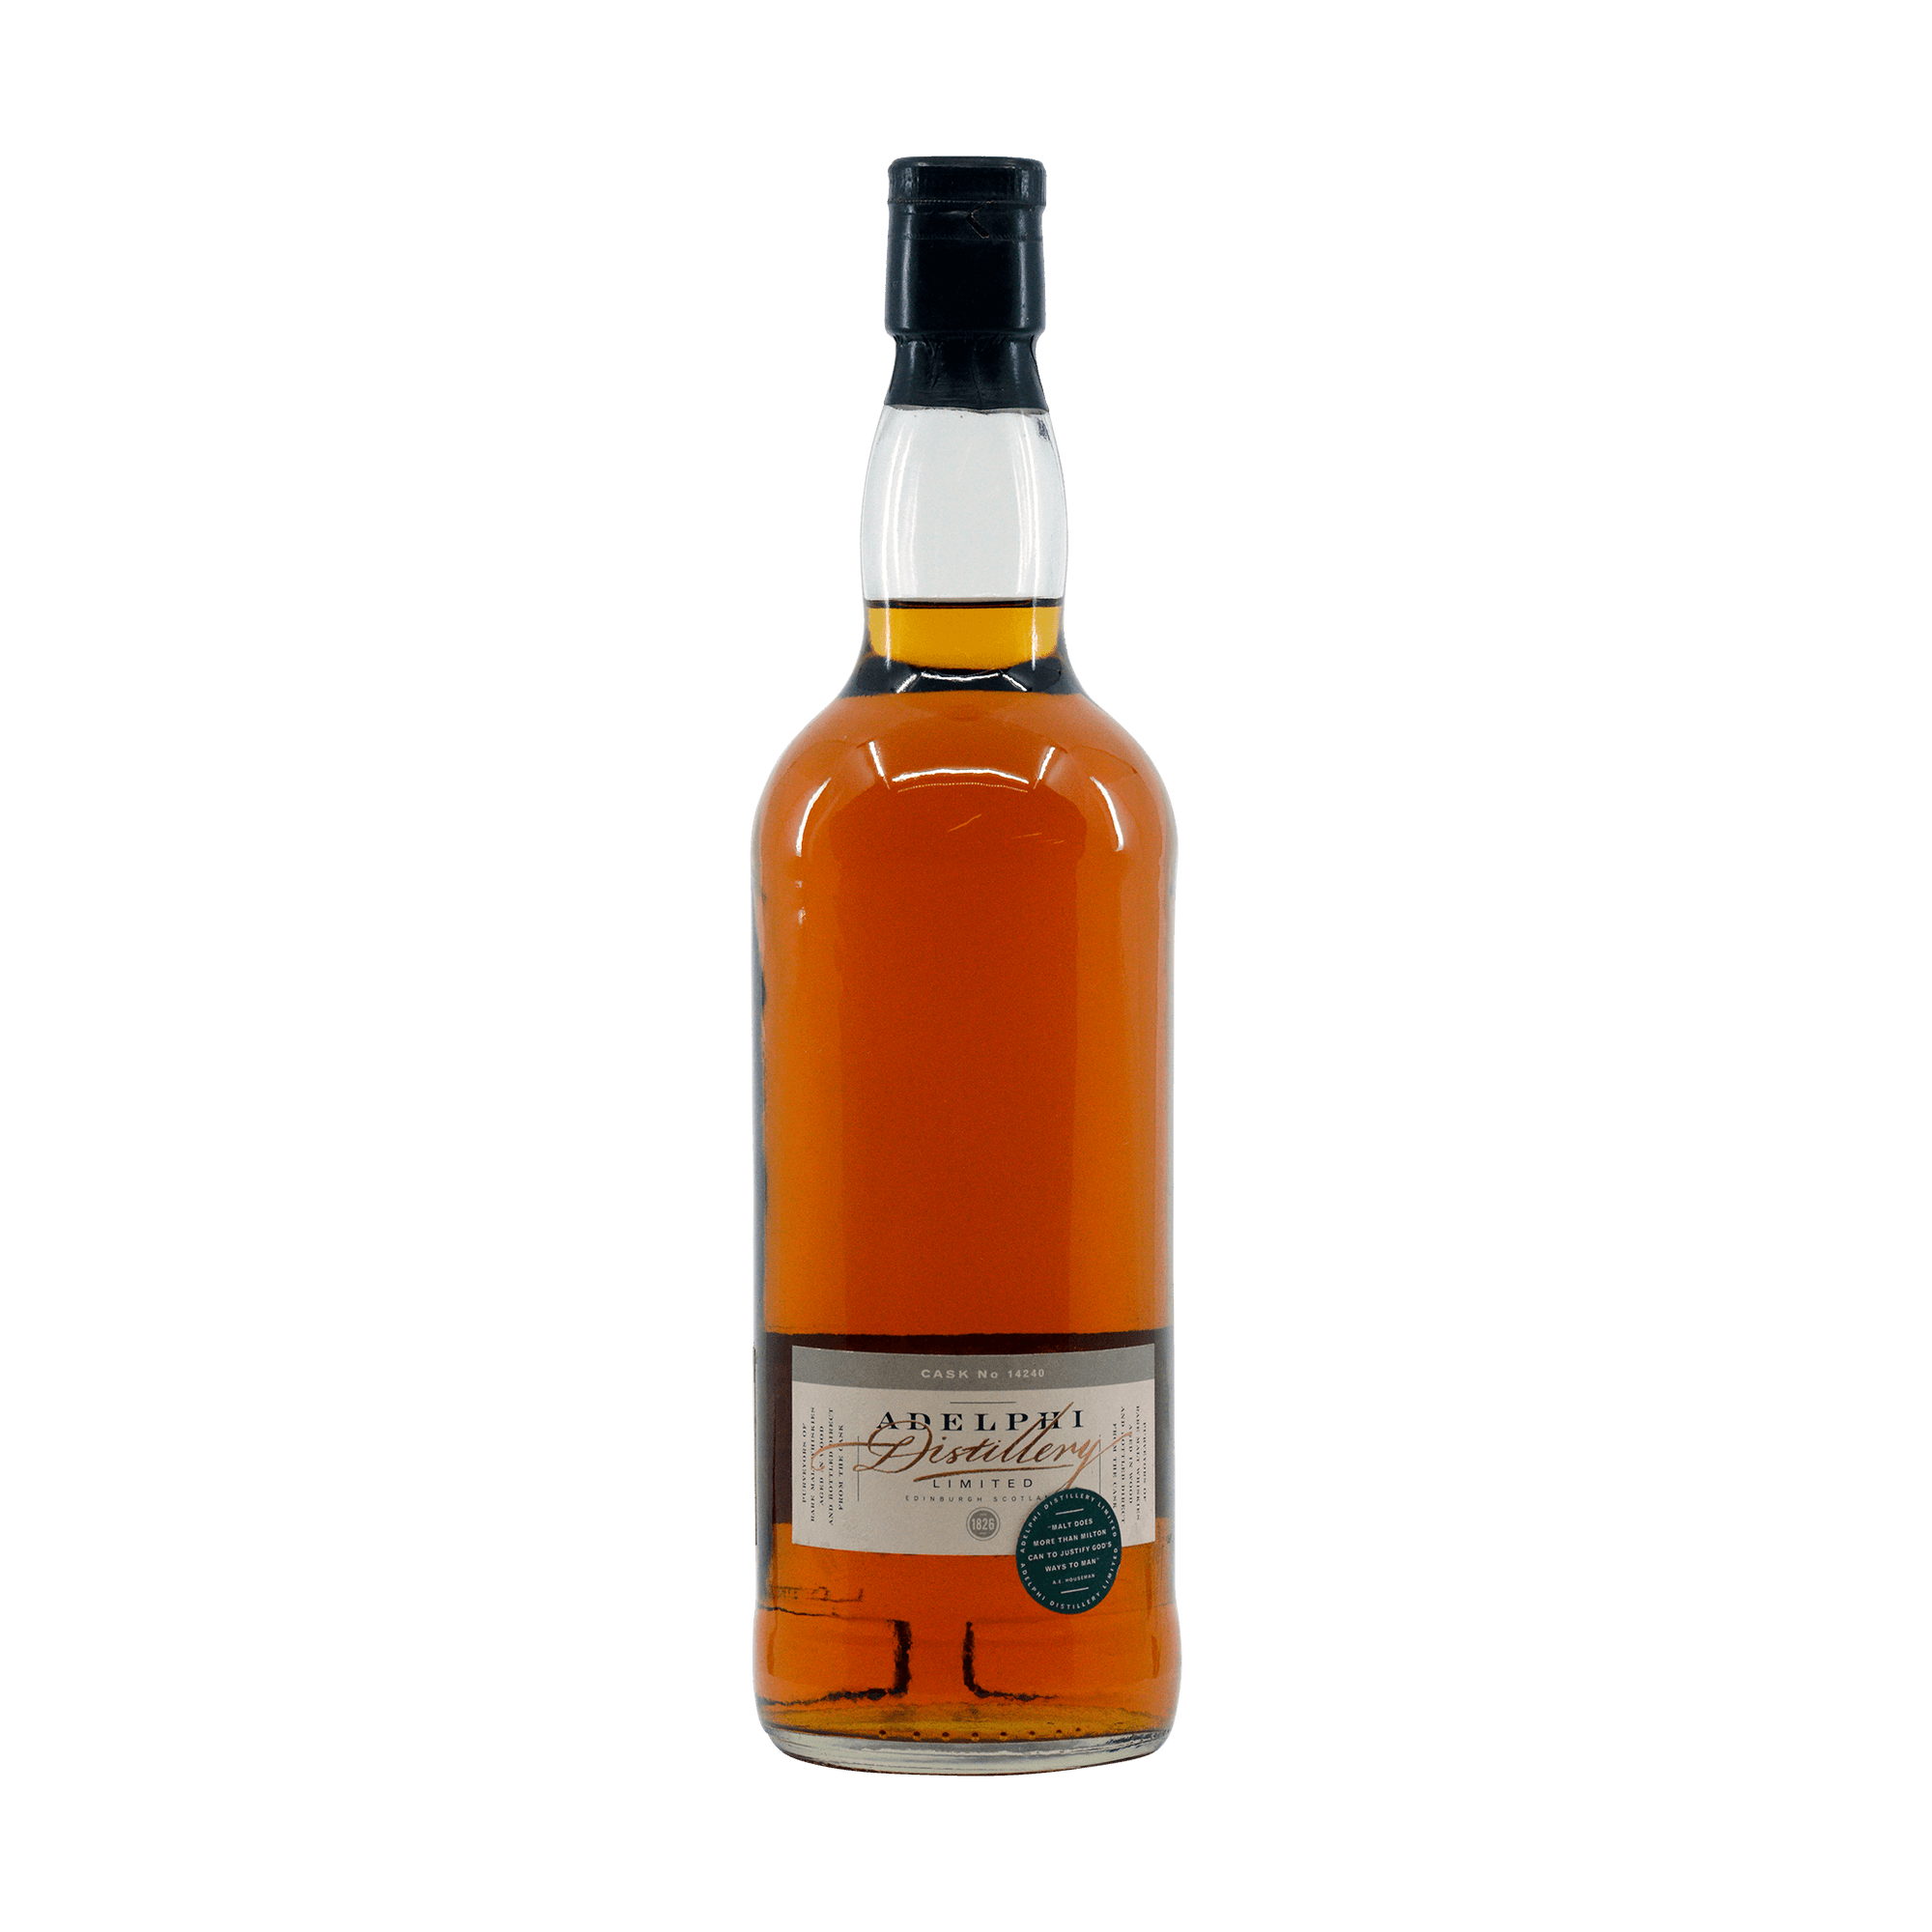 Macallan 1988 12 Year Old Adelphi 57.40%